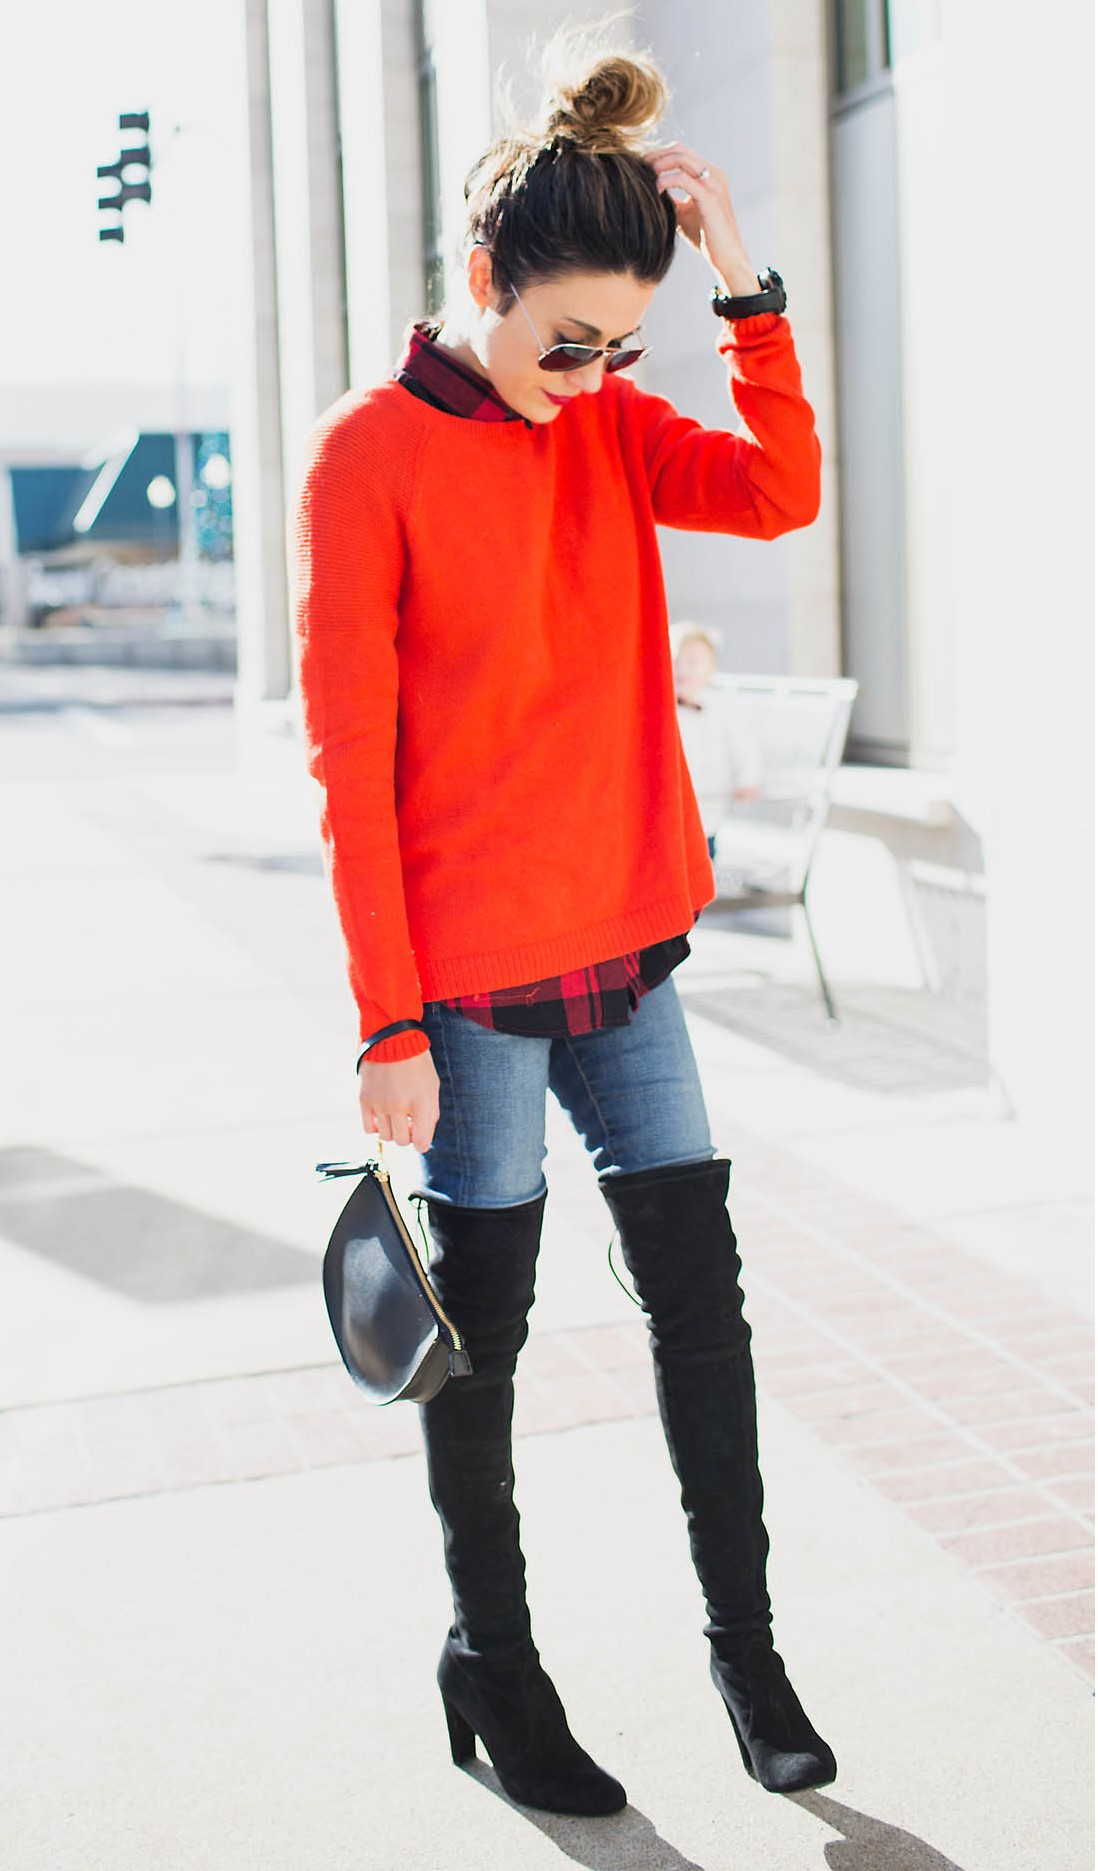 blue-med-skinny-jeans-black-shoe-boots-otk-red-sweater-red-plaid-shirt-hairr-bun-sun-watch-fall-winter-weekend.jpg